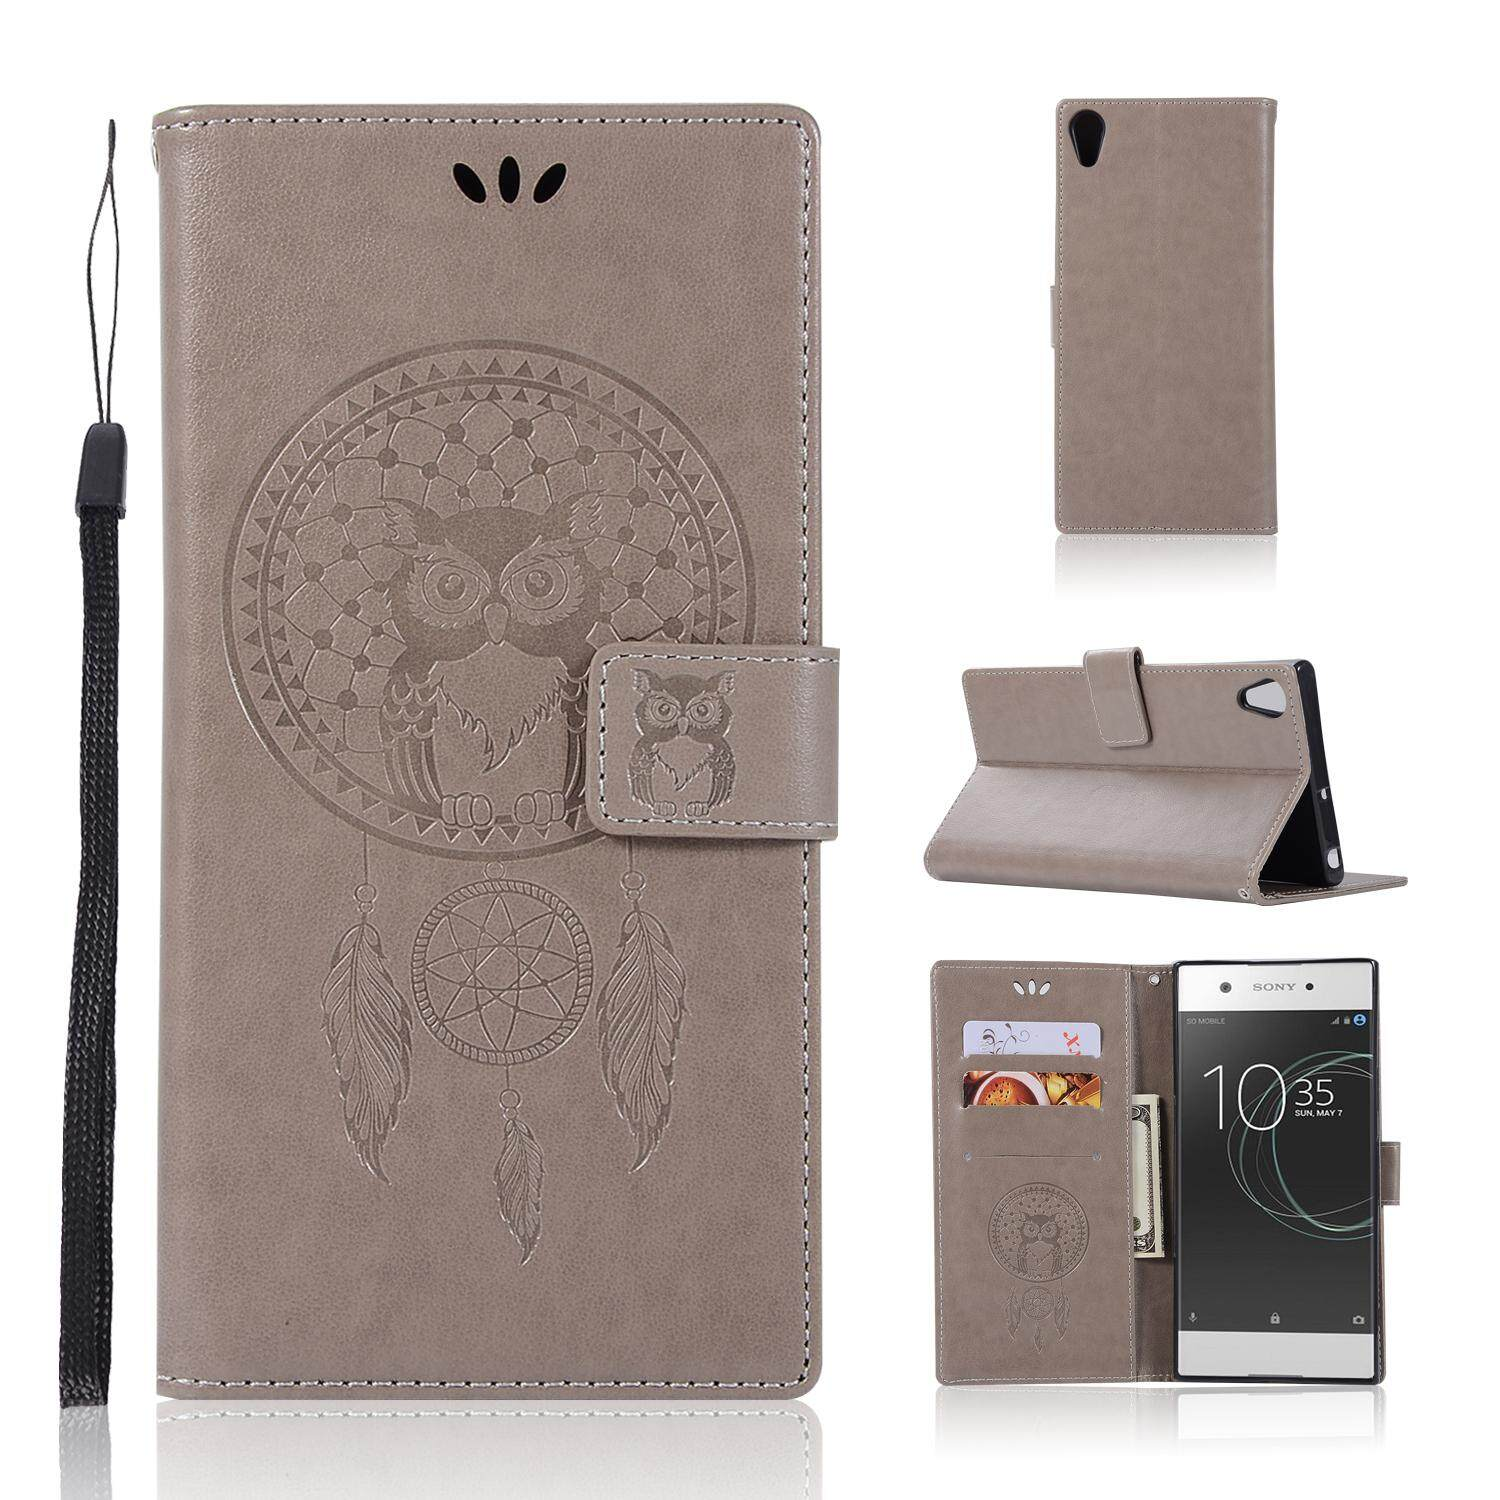 Luxury For Sony Xperia Xa Ultra / C6 Casing , 3d Owl Embossing Leather Folio Flip Case Cover By Life Goes On.